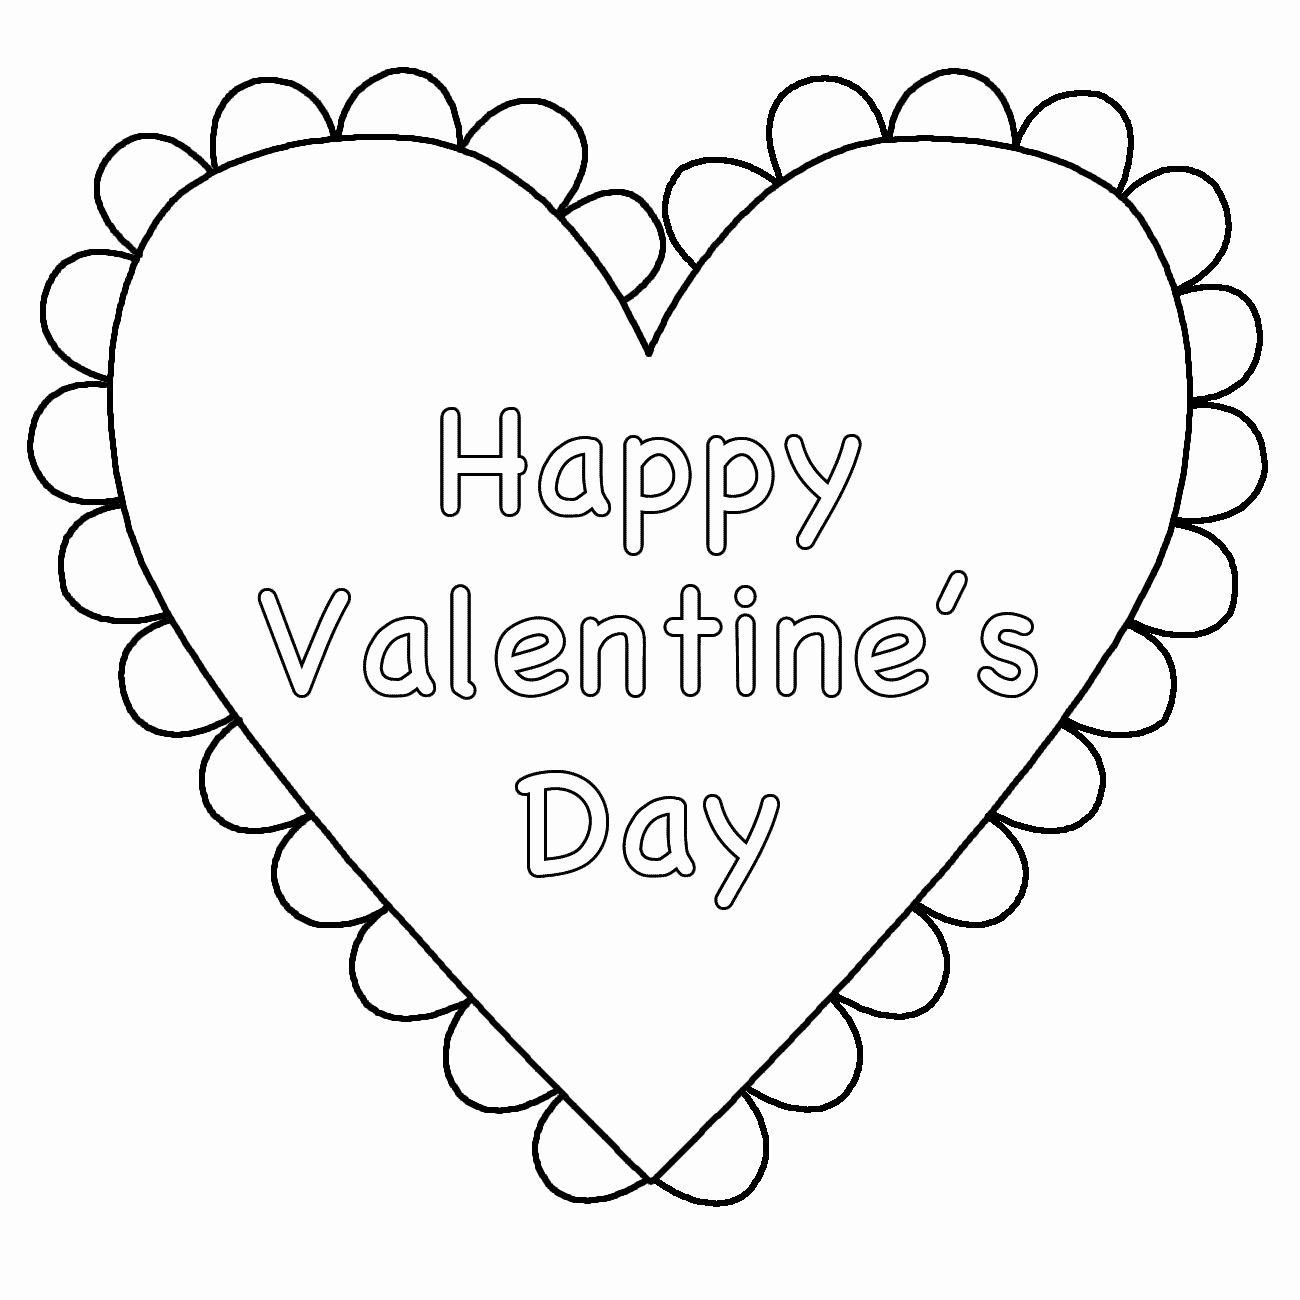 Cute Heart Coloring Pages New Valentines Day Heart Shaped Coloring Pages Print Colorin Valentine Coloring Pages Valentine Coloring Valentines Day Coloring Page